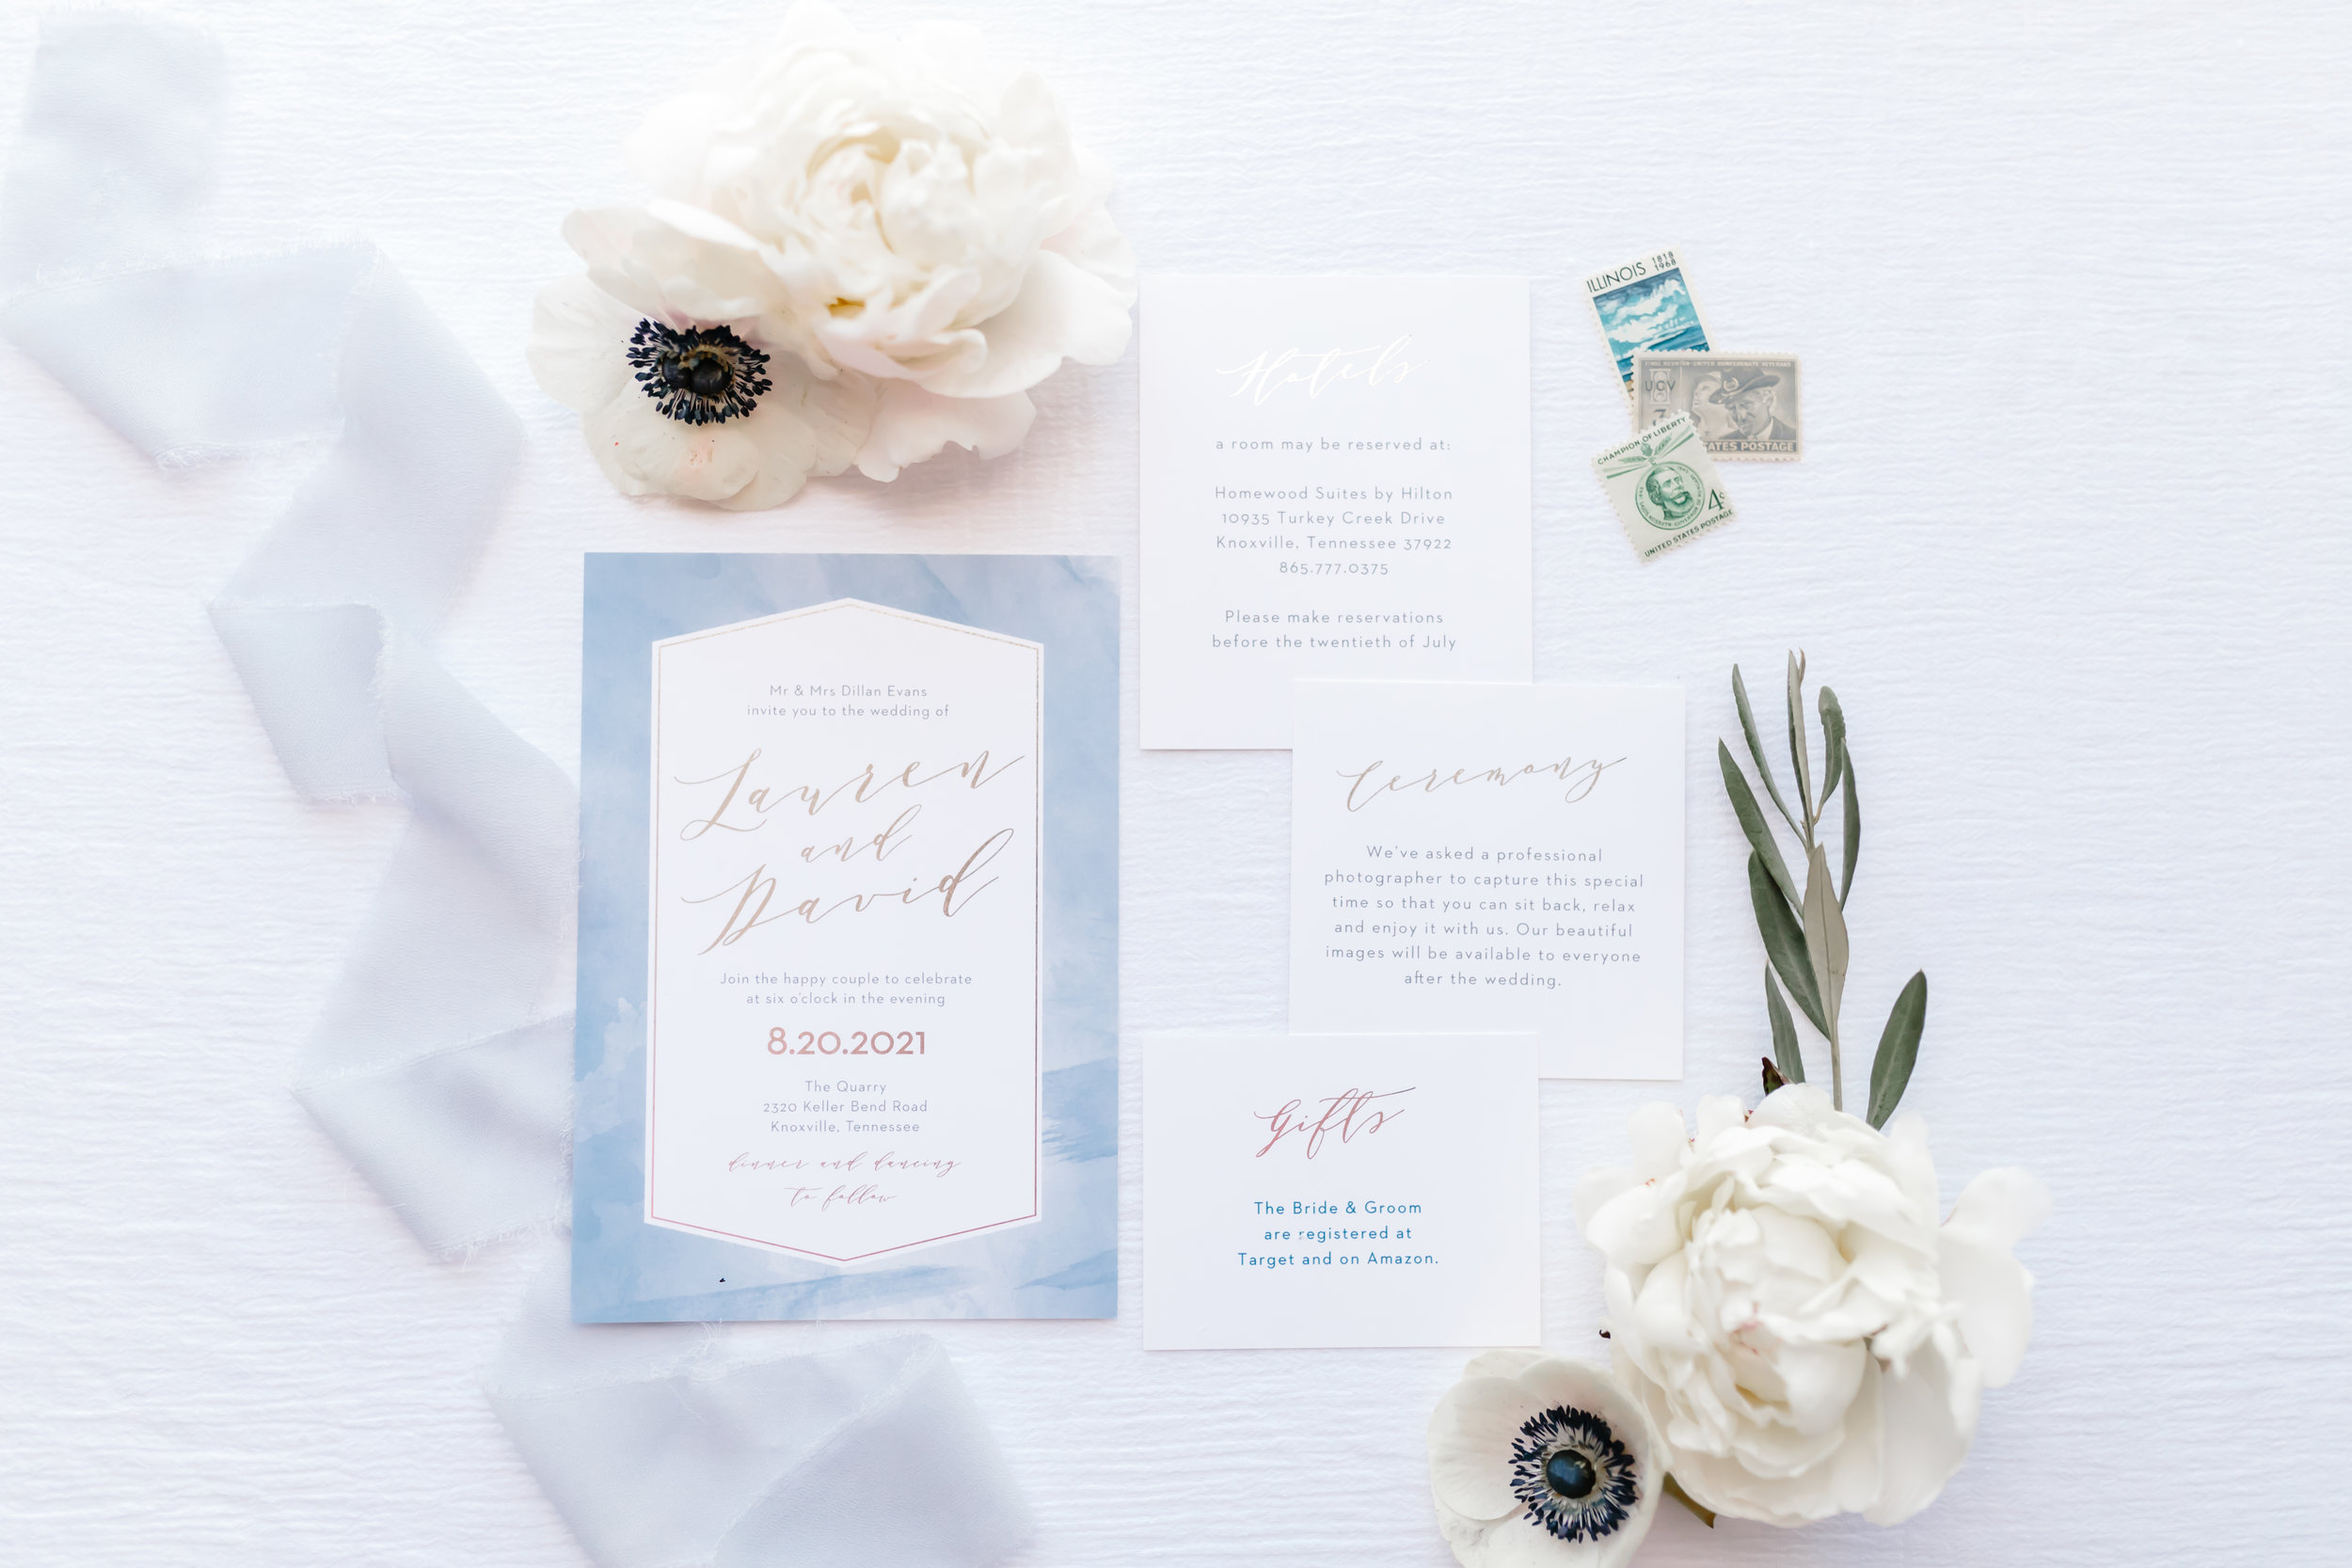 blue watercolor custom wedding stationery invitation suite white anemones white peonies ivy eucalyptus